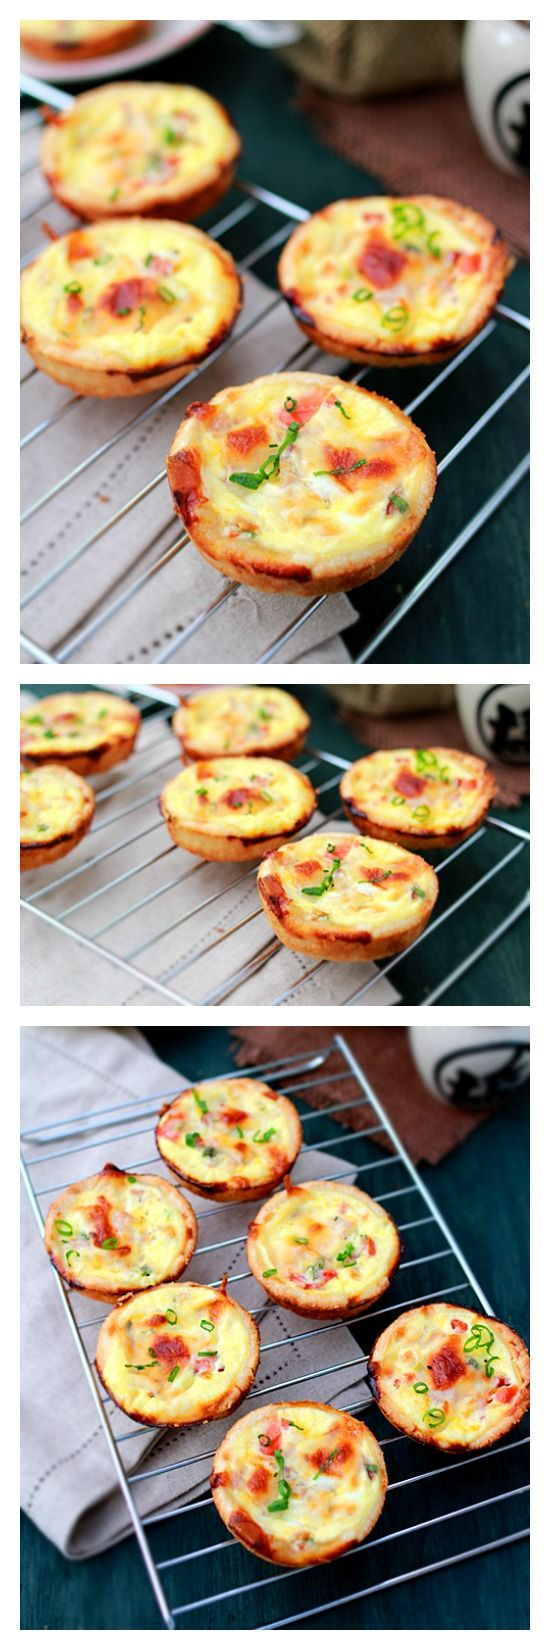 Mini Quiches. Super quick and easy with store-bought pie pastry but the filling is creamy, savory, rich, yummy and takes only 30 minutes.